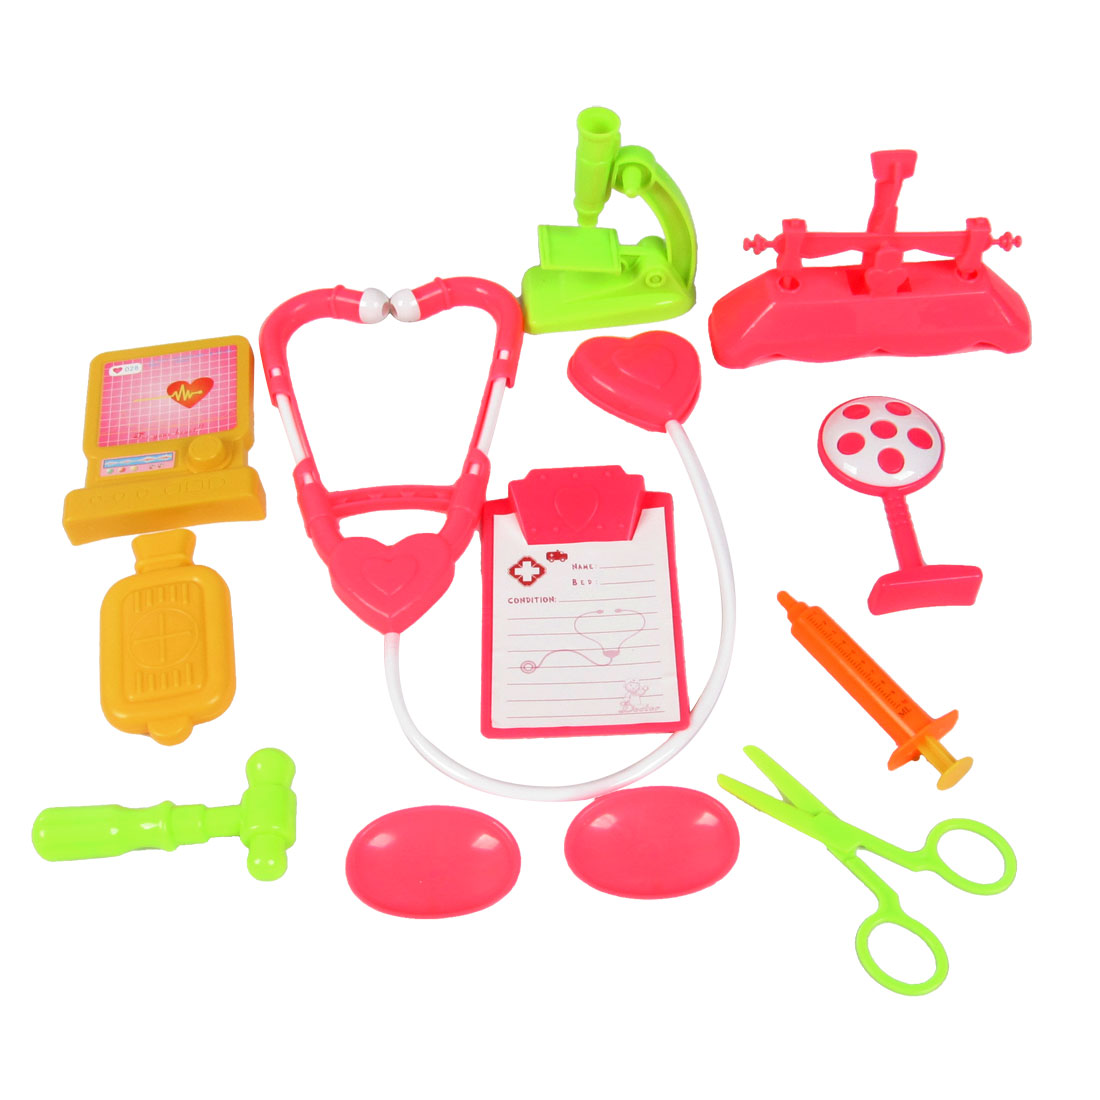 Plastic Doctor Tools Set 12 in 1 Colorful Toy for Children